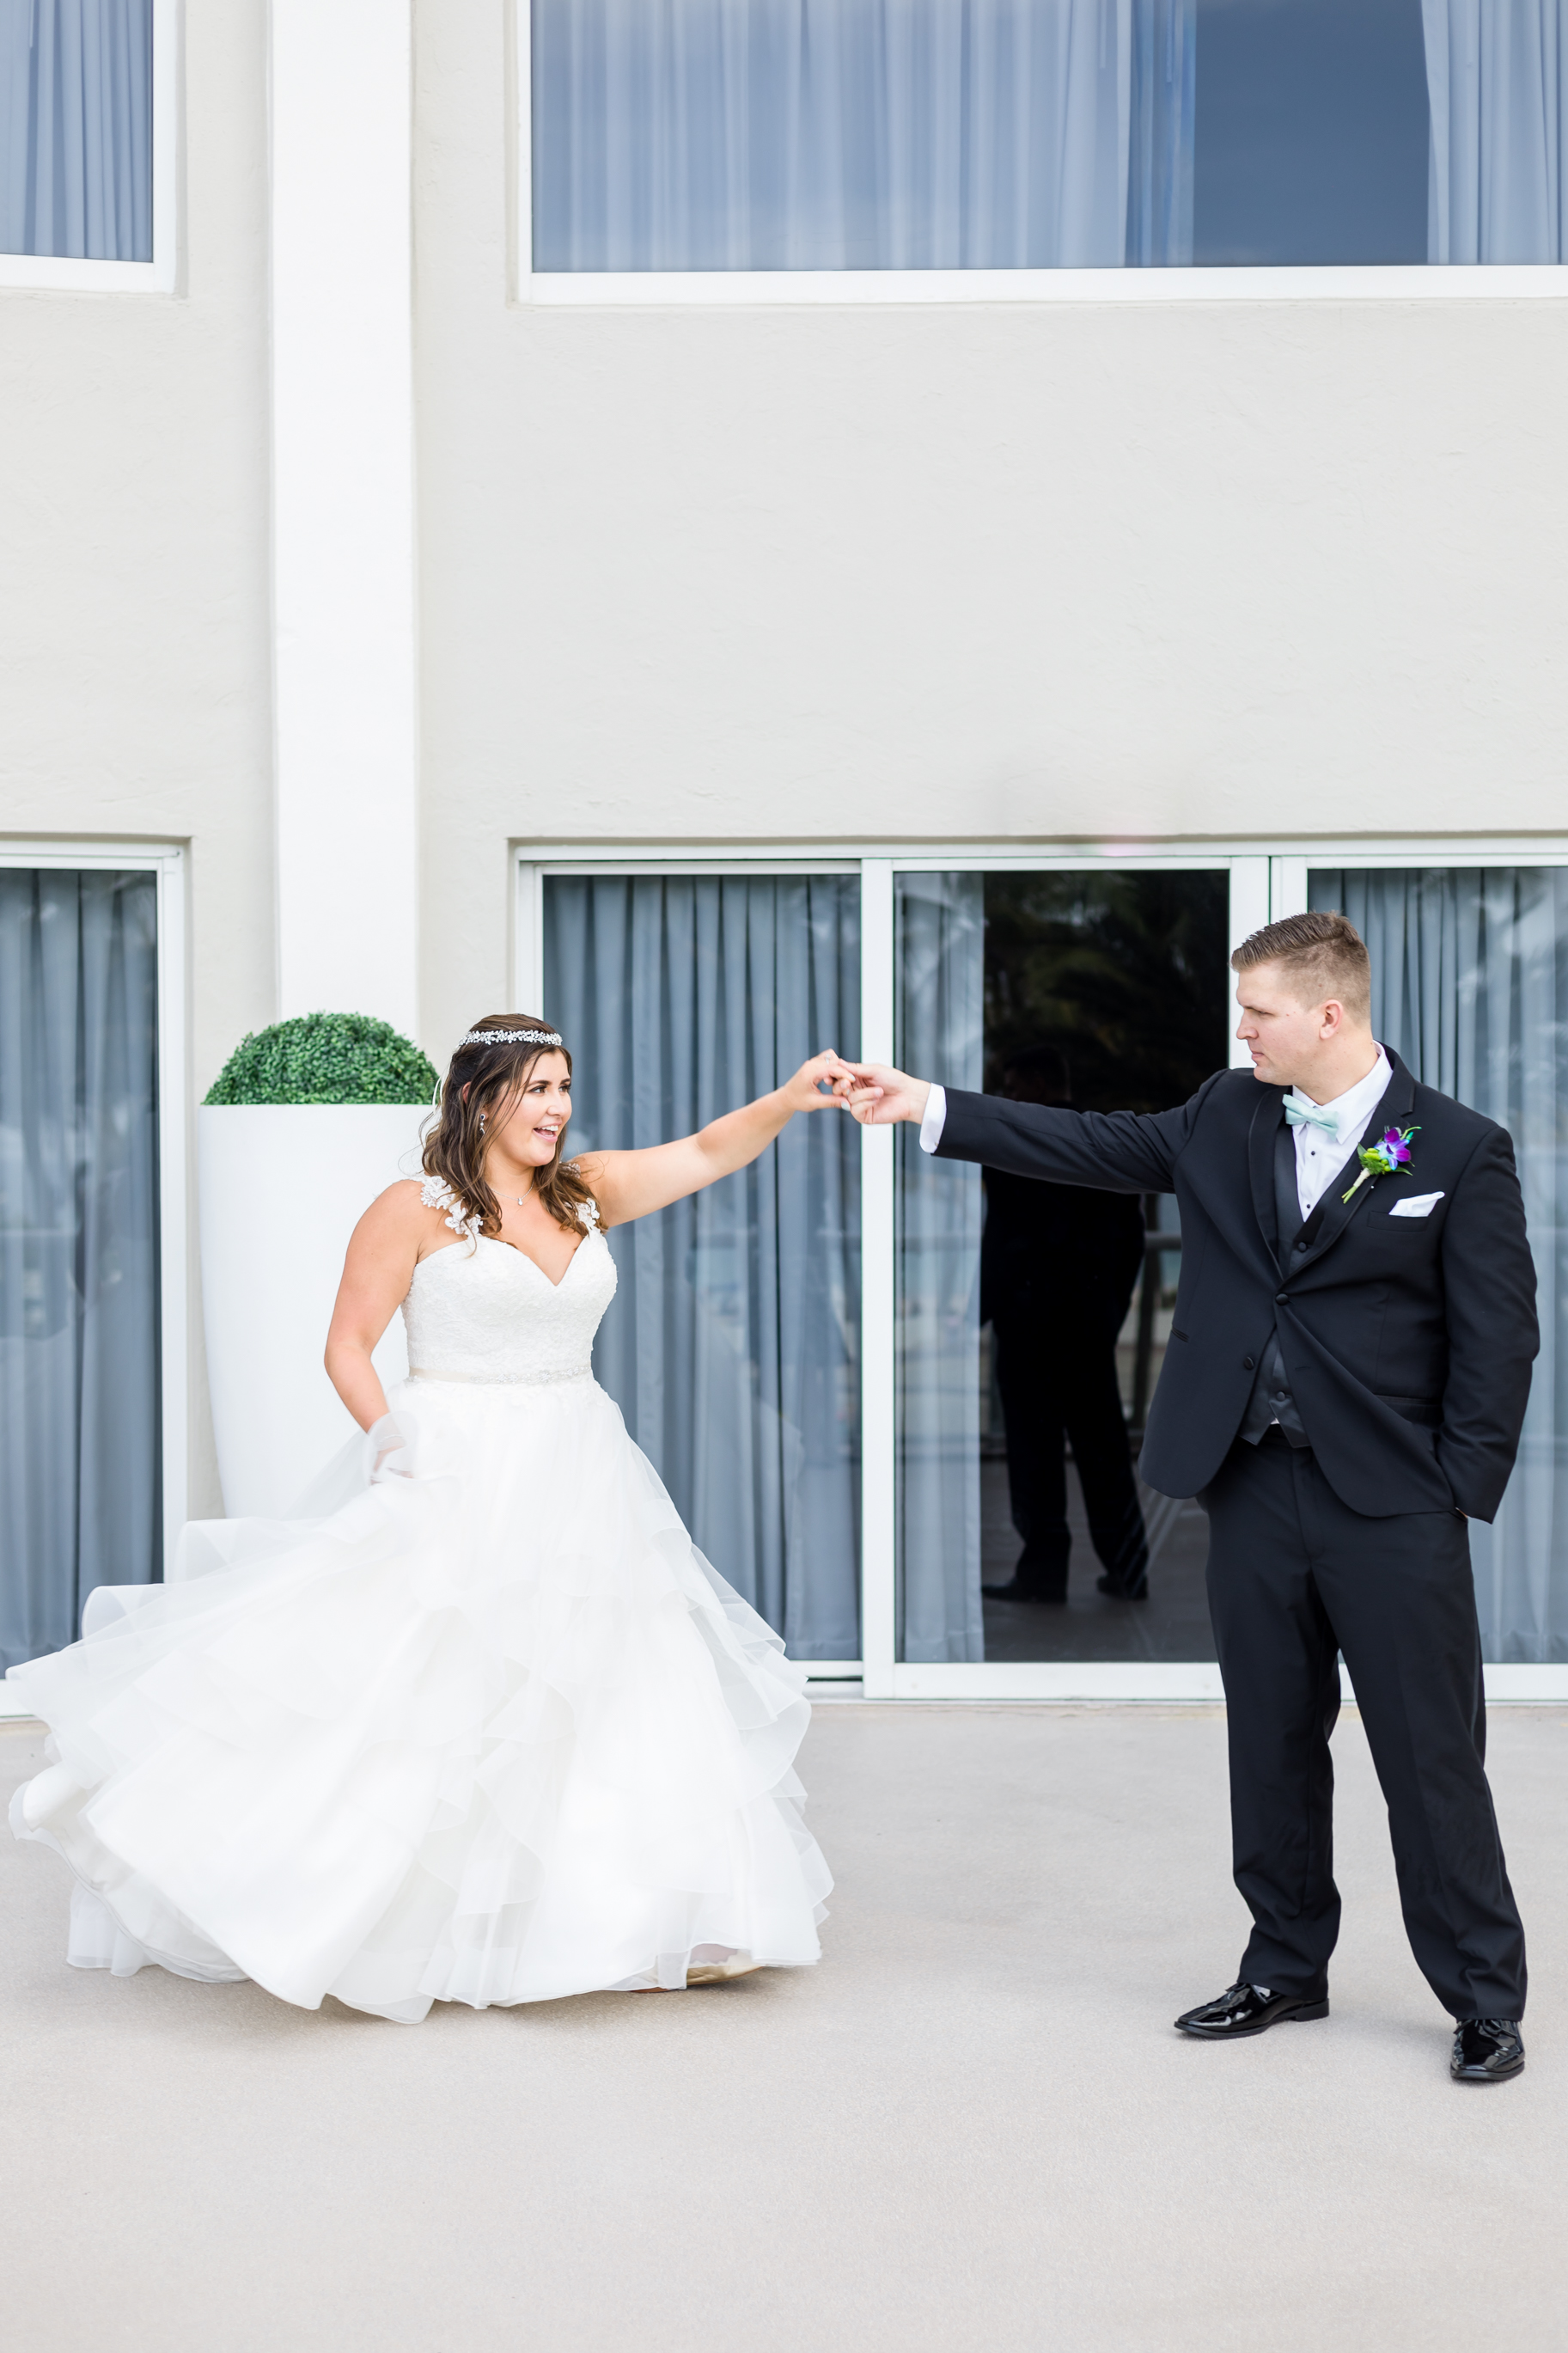 A Coastal Wedding at Sonesta Fort Lauderdale Beach Hotel